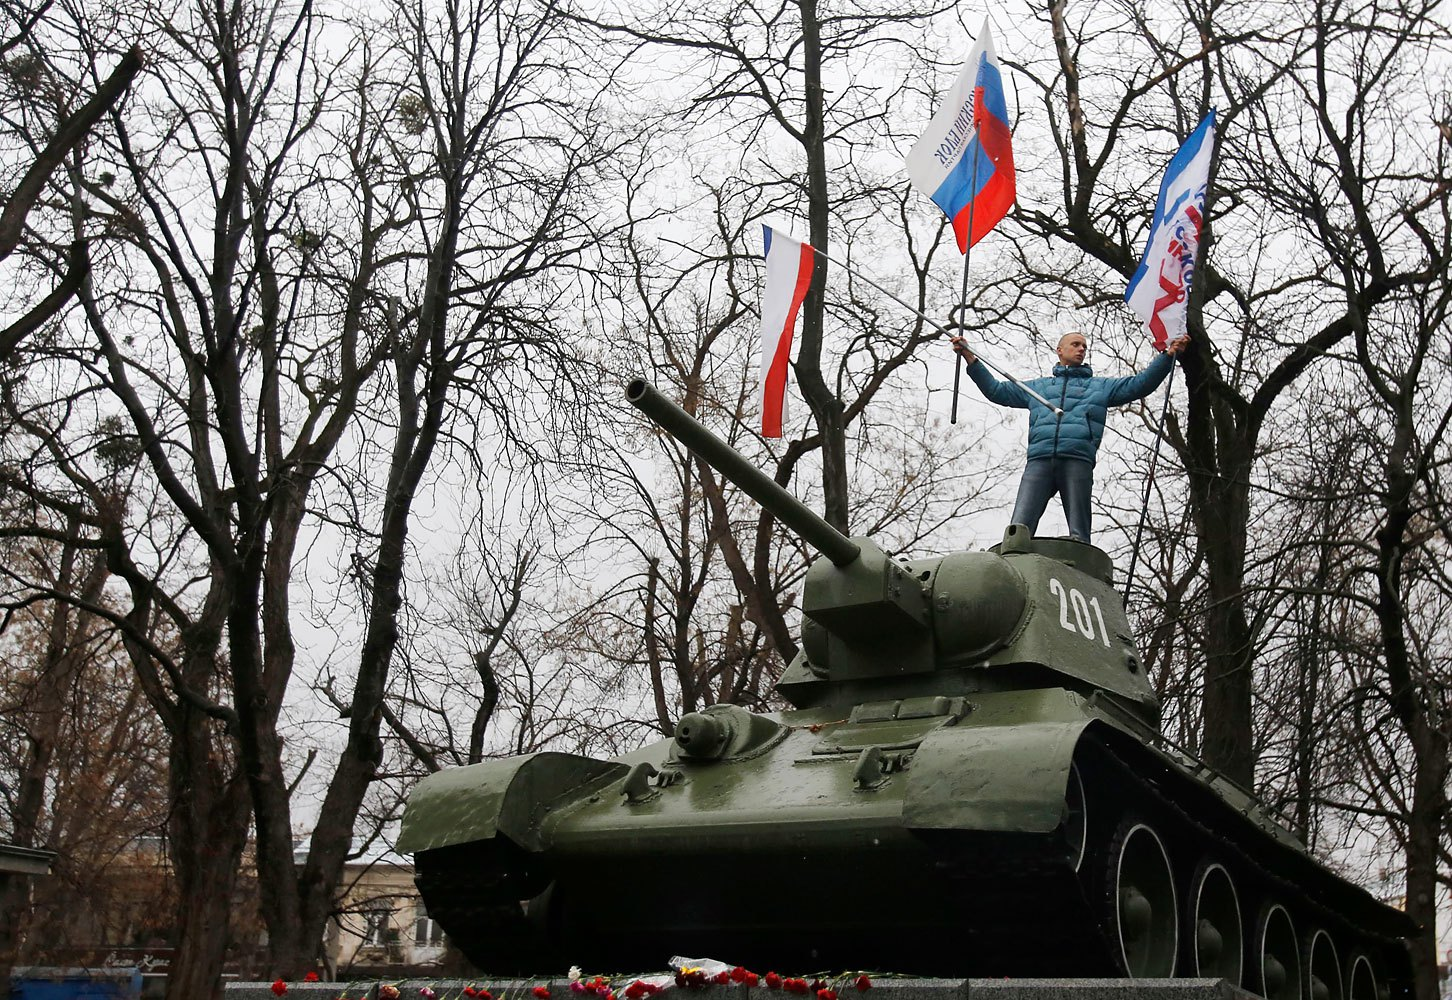 A Pro-Russian demonstrator waves Russian and Crimea flags atop an old Soviet Army tank during a protest in front of a local government building in Simferopol, Feb. 27, 2014.